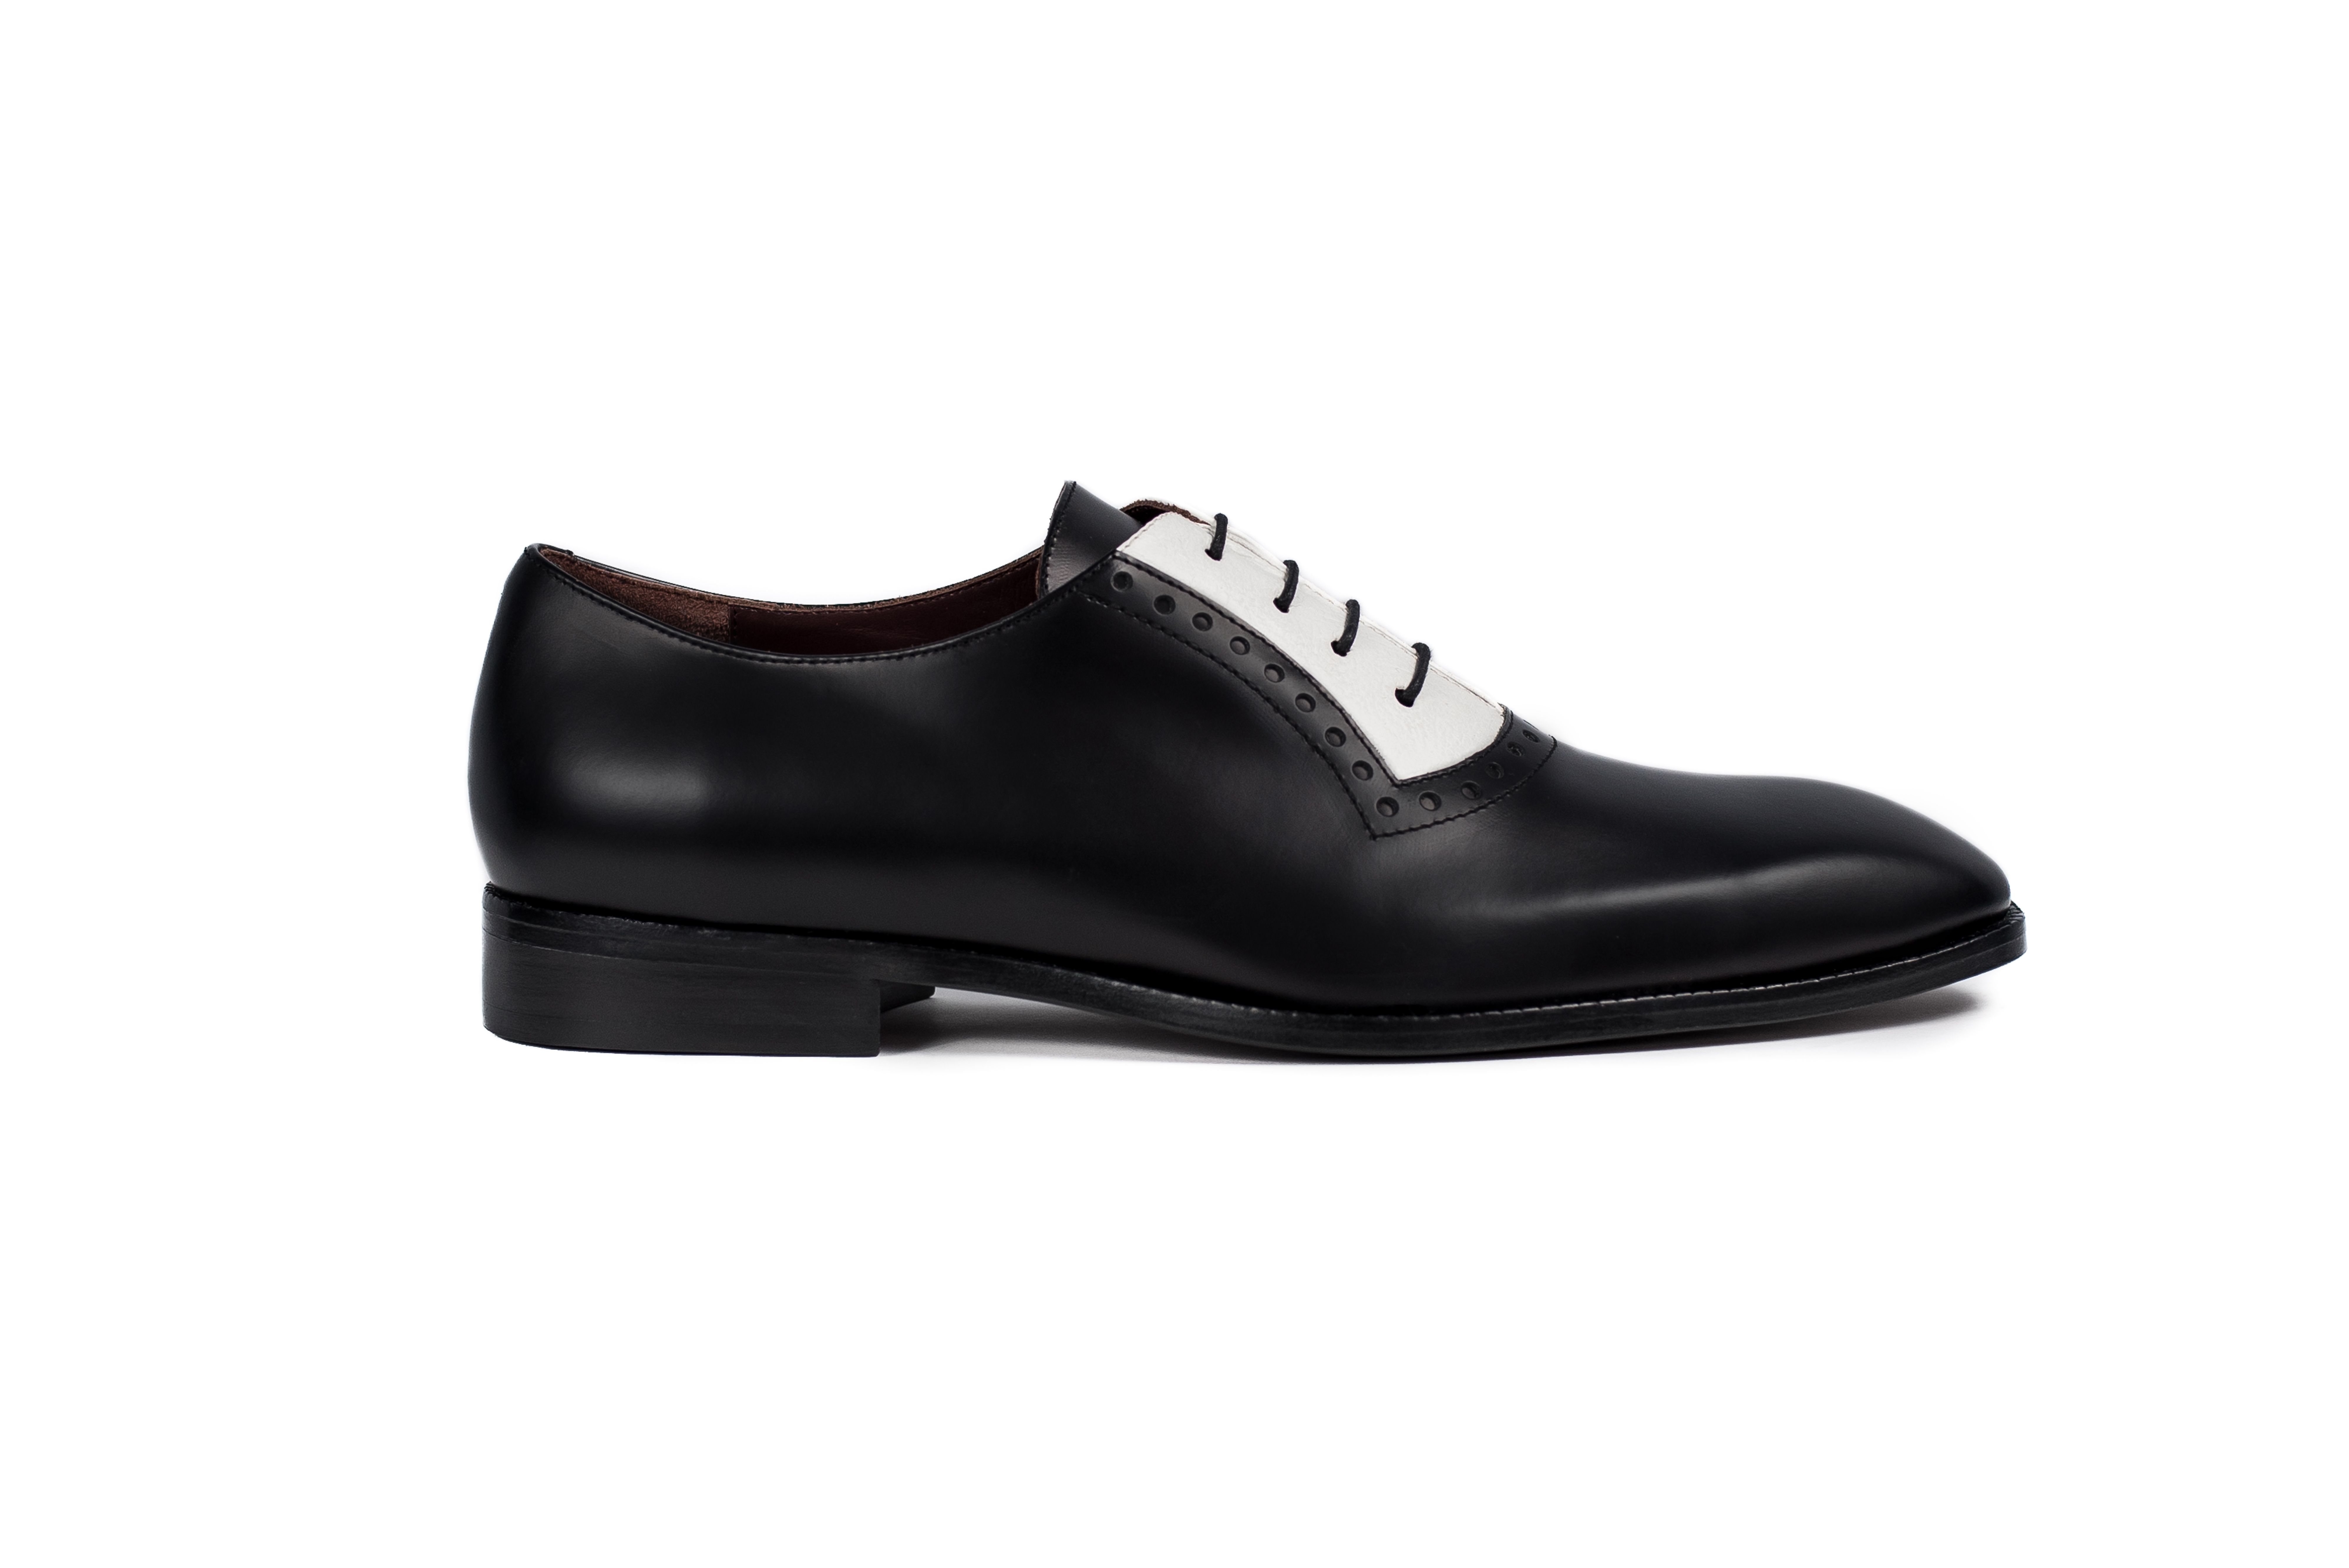 cbf0f9e3684 Handmade Derby Two Tone Leather Black   white Men leather interior lining  Soft Calf Leather Lining inside Color Burgundy Black One peace leather Sole.